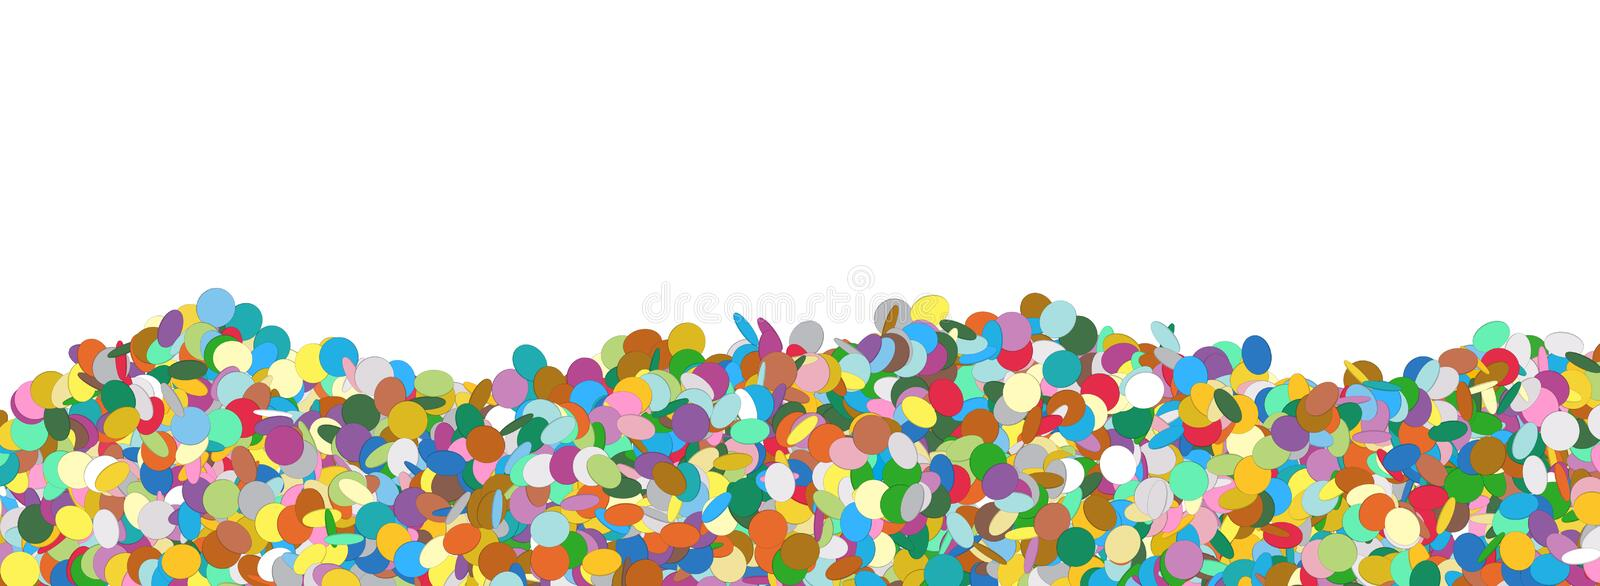 Confetti Panorama Background Template with Free Text Space royalty free illustration